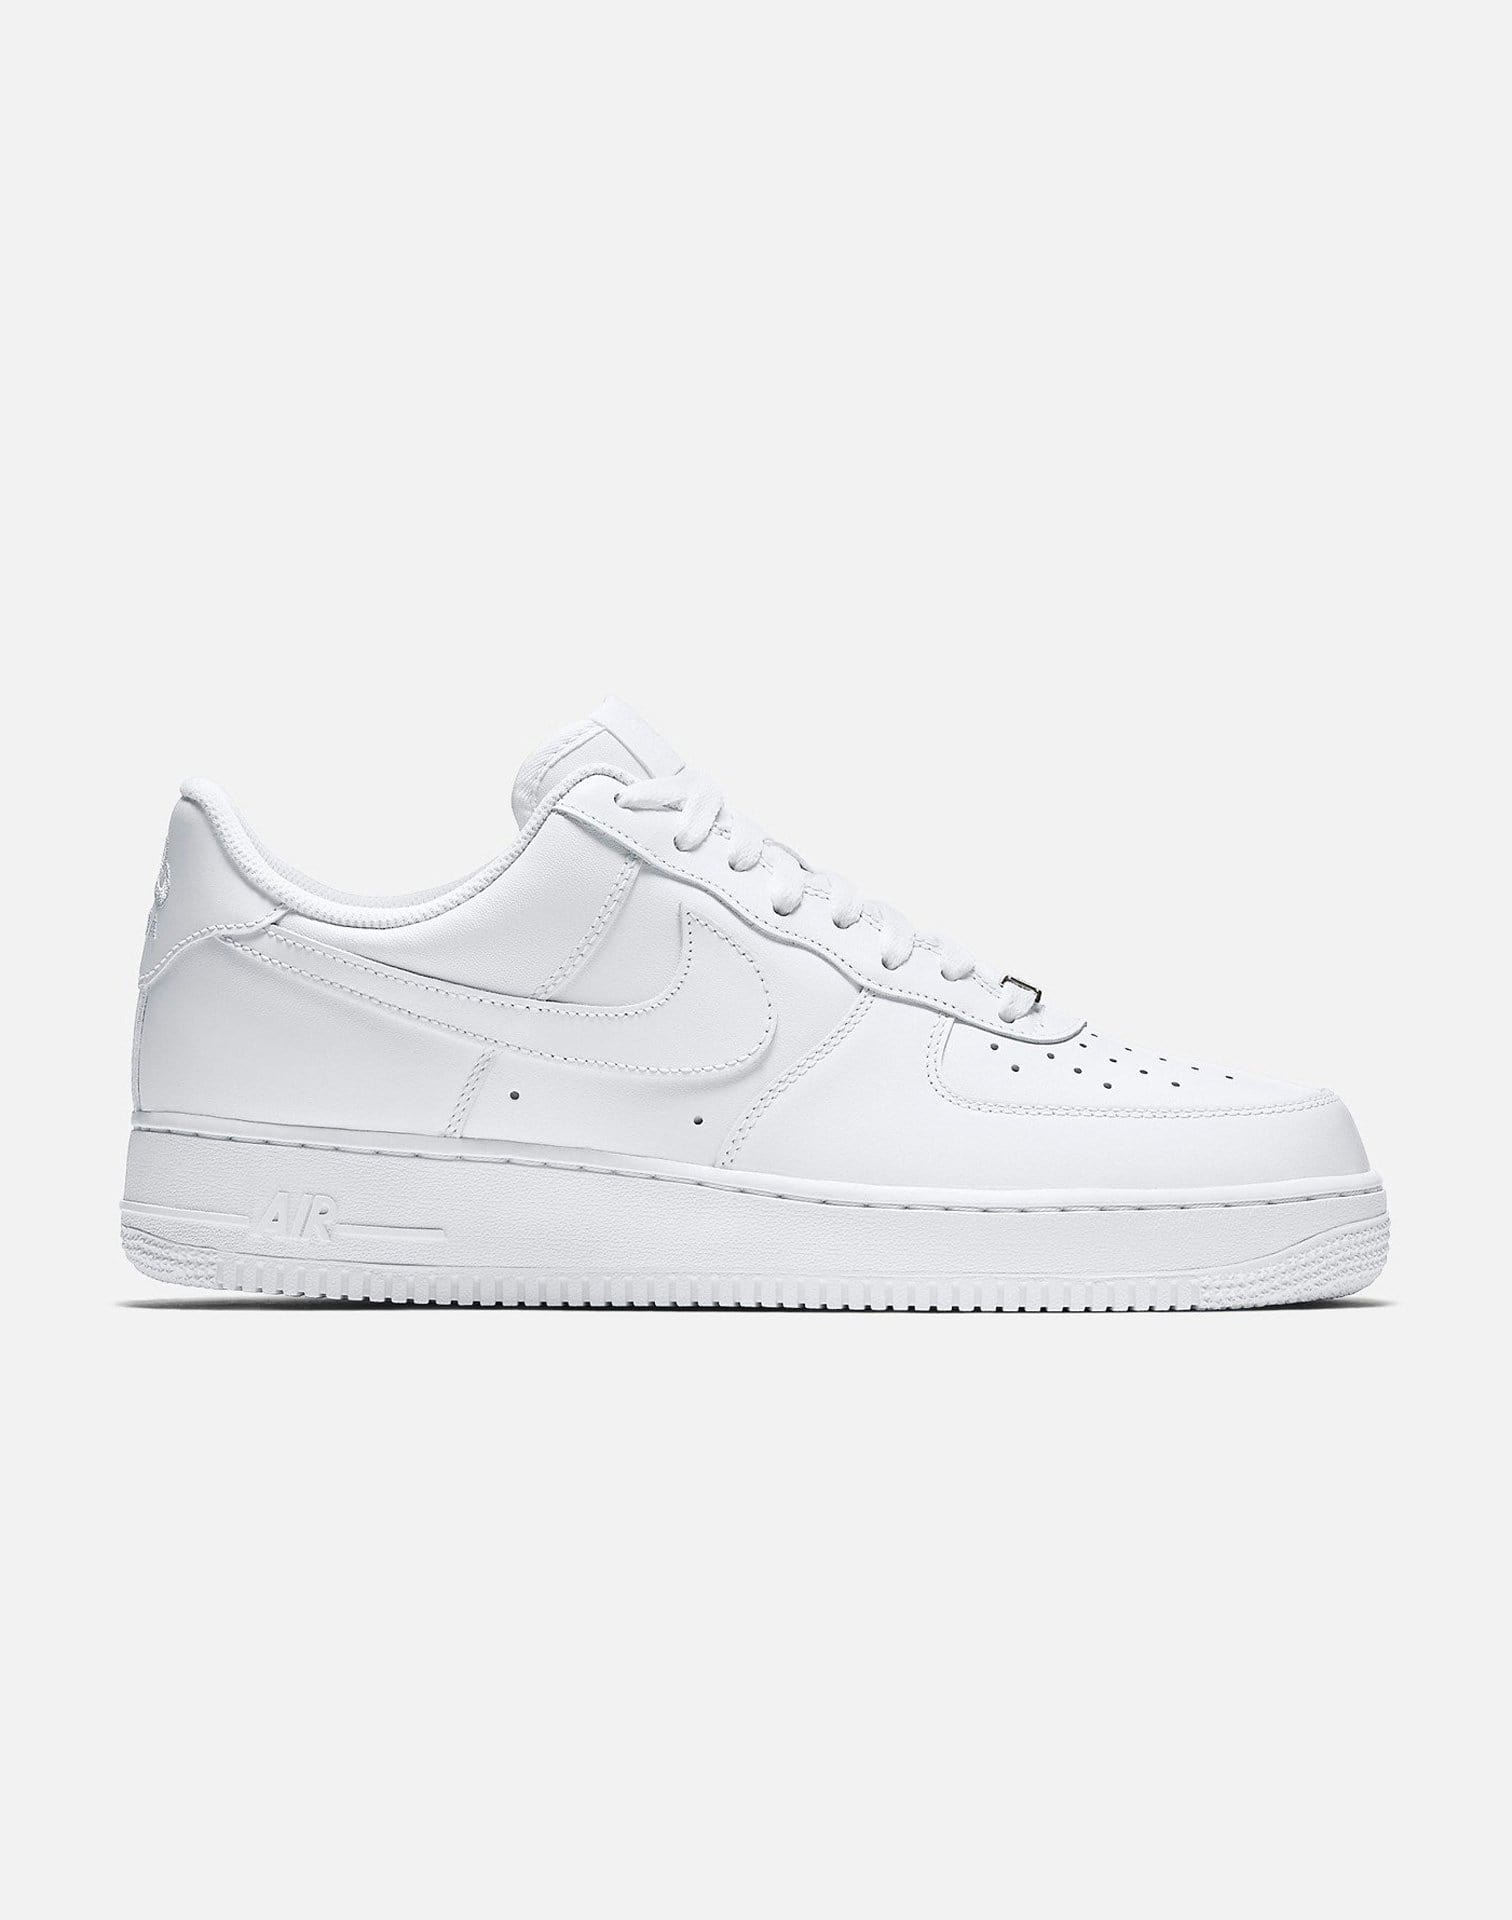 AIR FORCE 1 '07 – DTLR